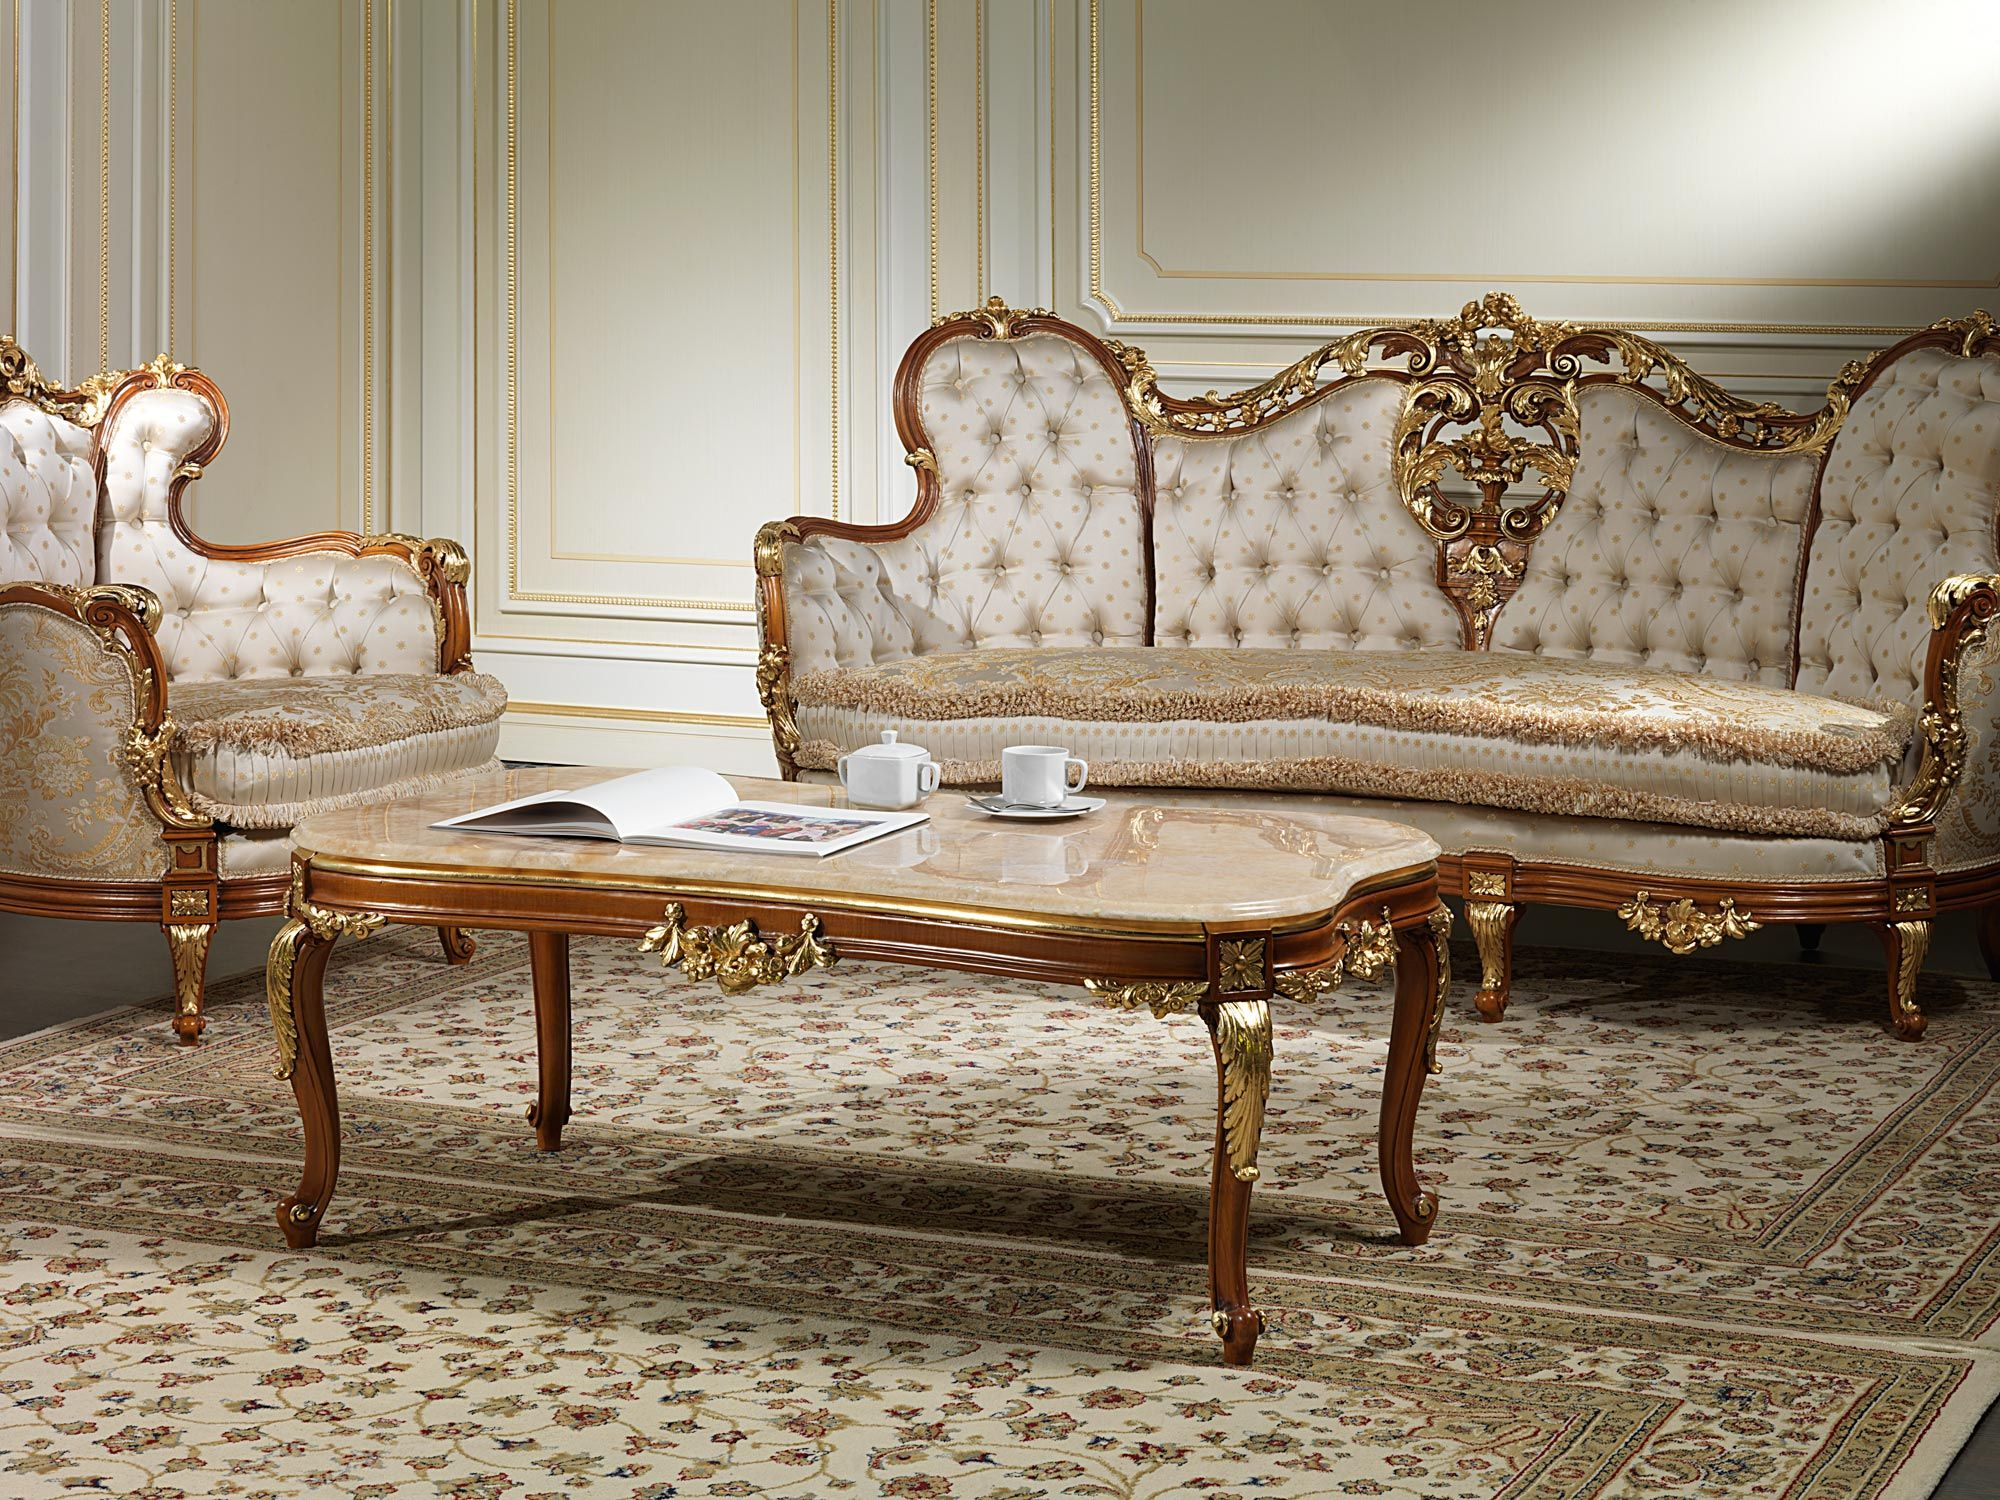 Sofas 800 Of Craft Production In The Classic Luxury Style Make Up